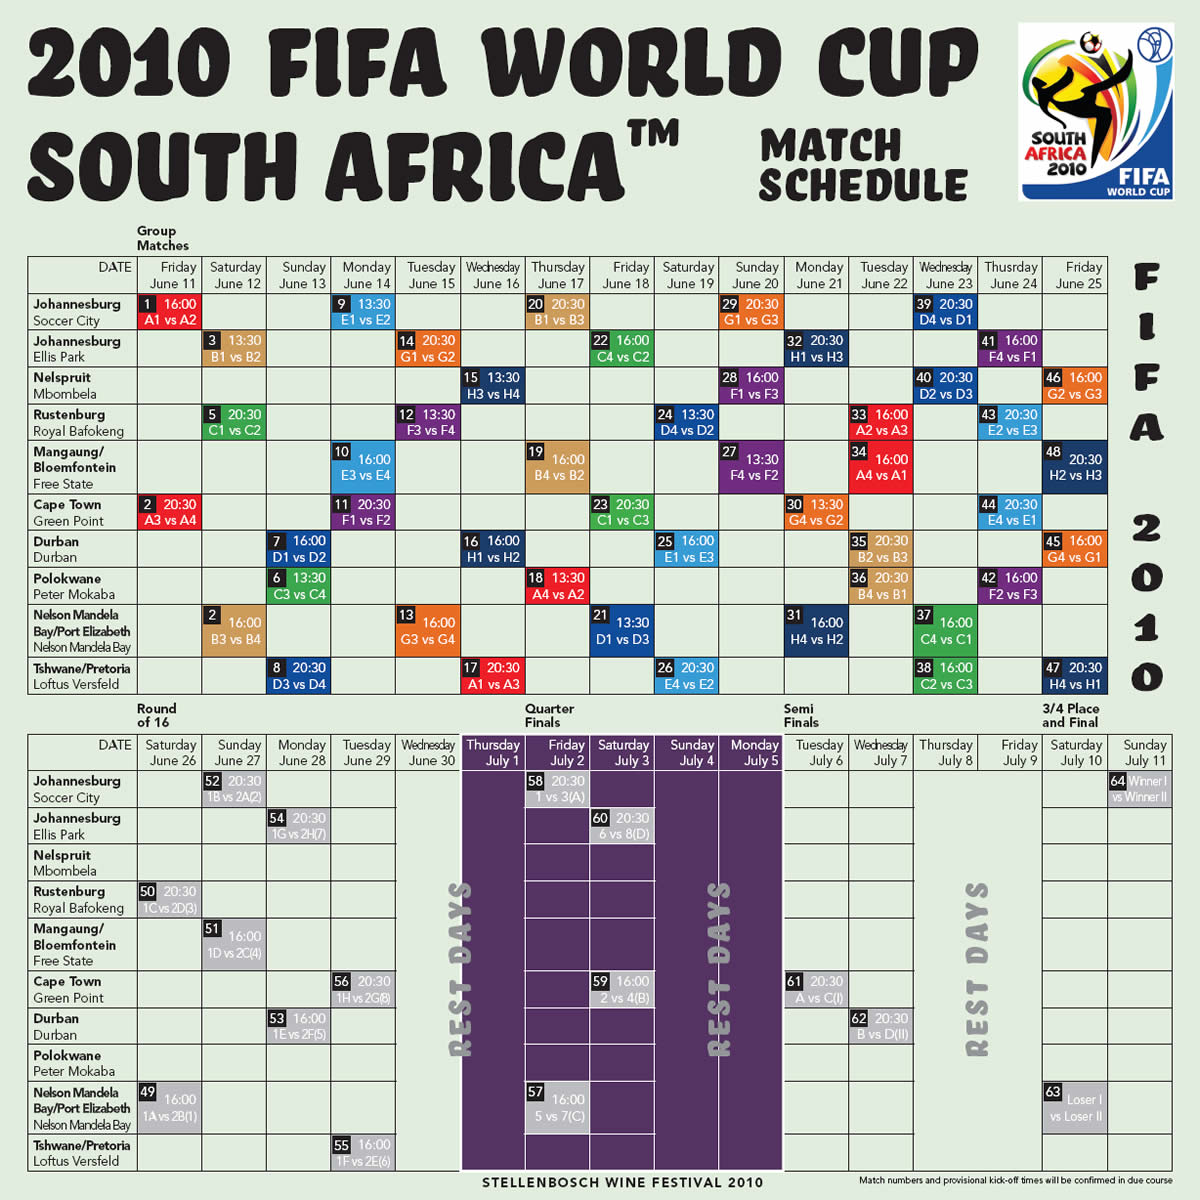 South africa 2010 world cup soccer 2010 fifa world cup match schedule